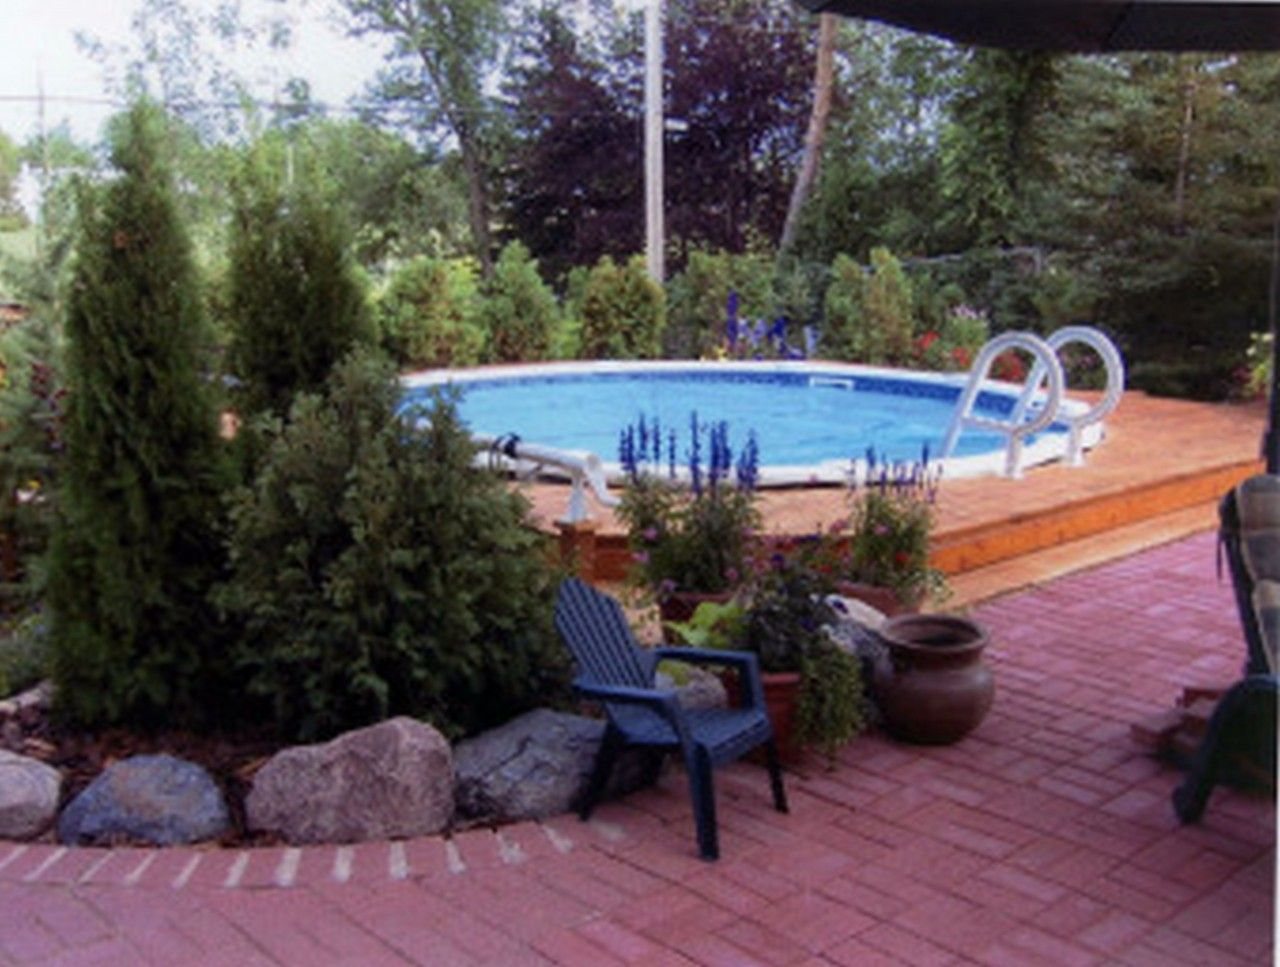 Landscaping ideas for backyard with above ground pool - Alluring Inexpensive Landscaping Ideas Style Excellent Cheap Landscaping Ideas For Backyard Mesmerizing Accessories Tone Above